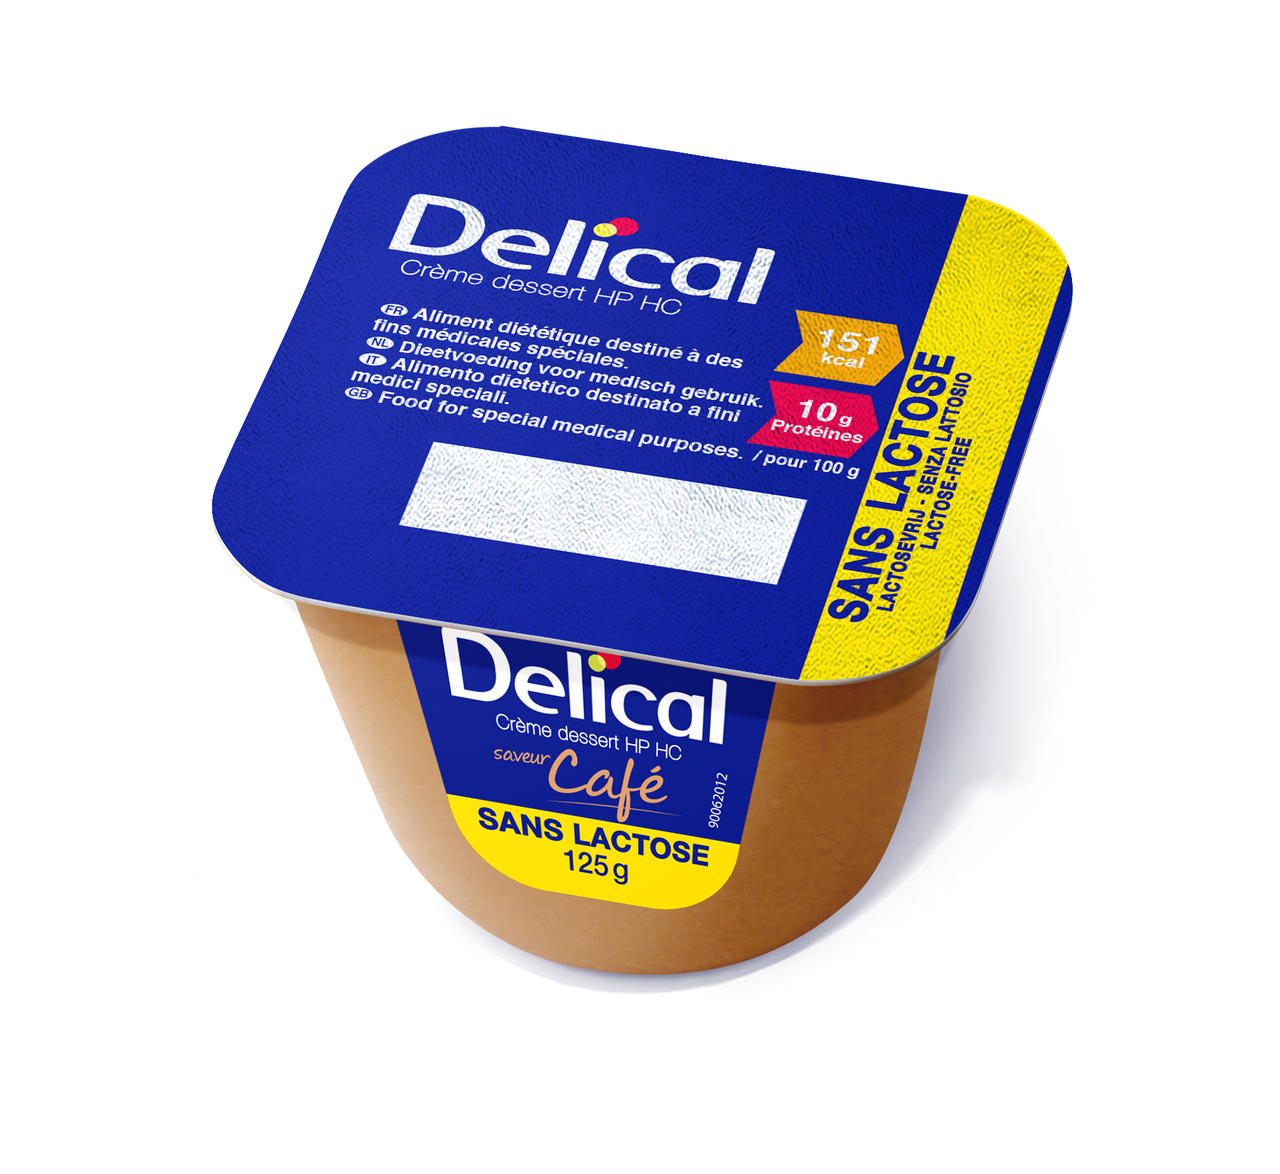 Delical Caffe 4 x 125g